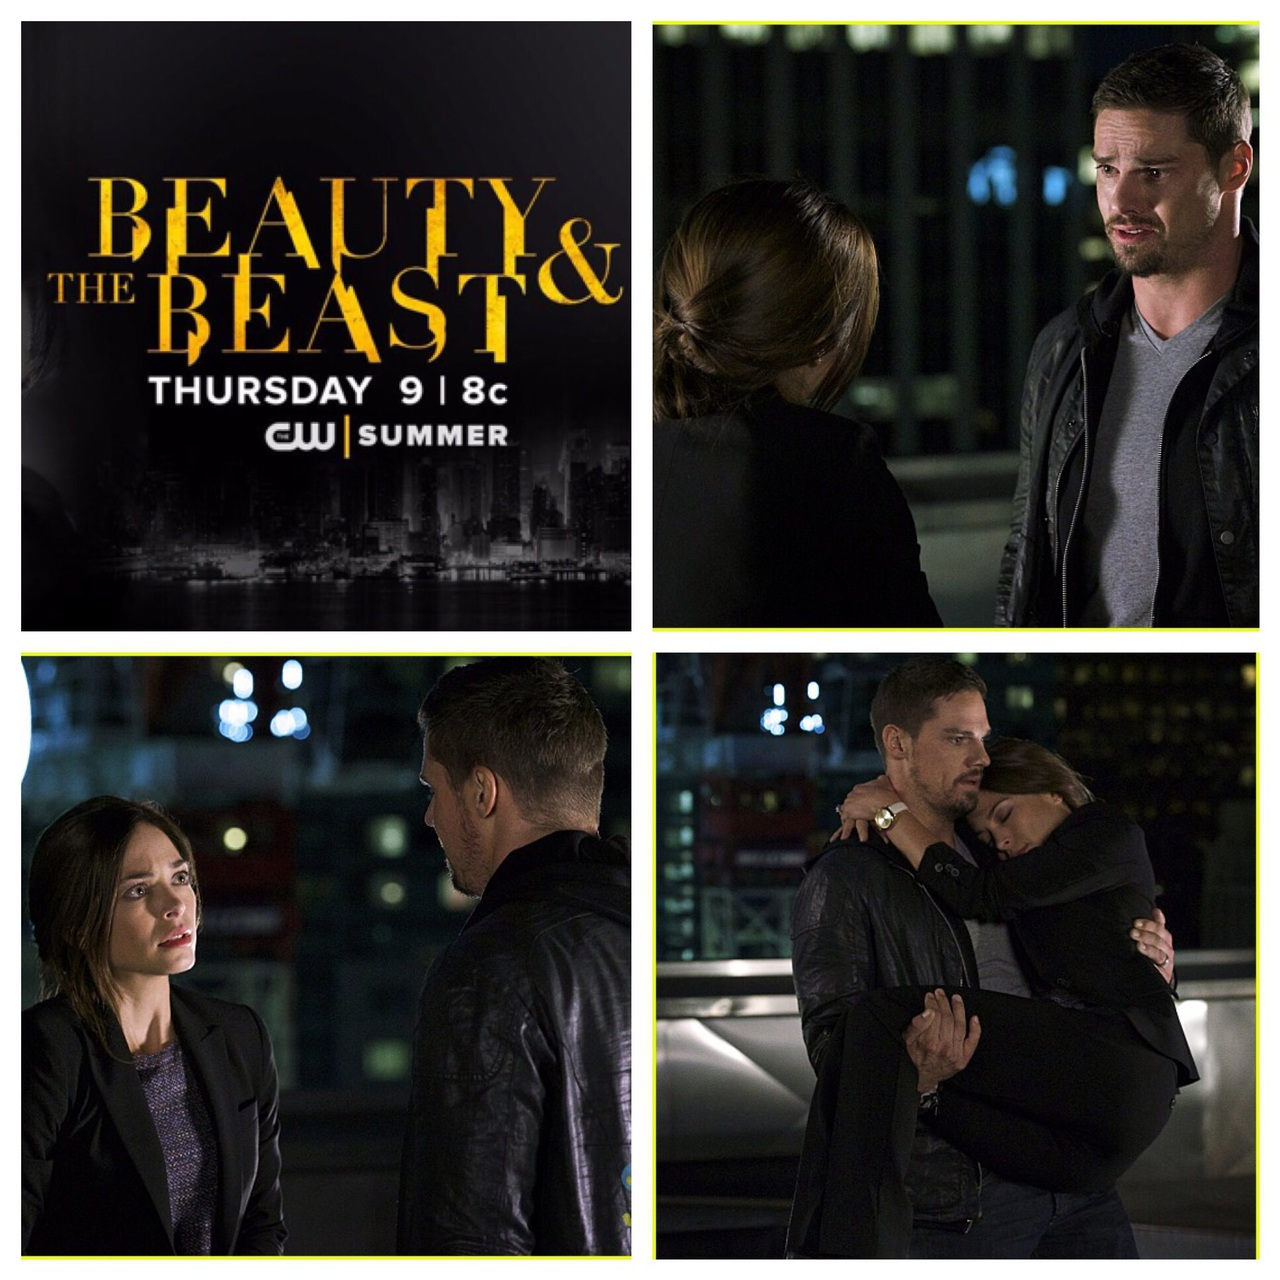 beauty and the beast, goals, and the cw image